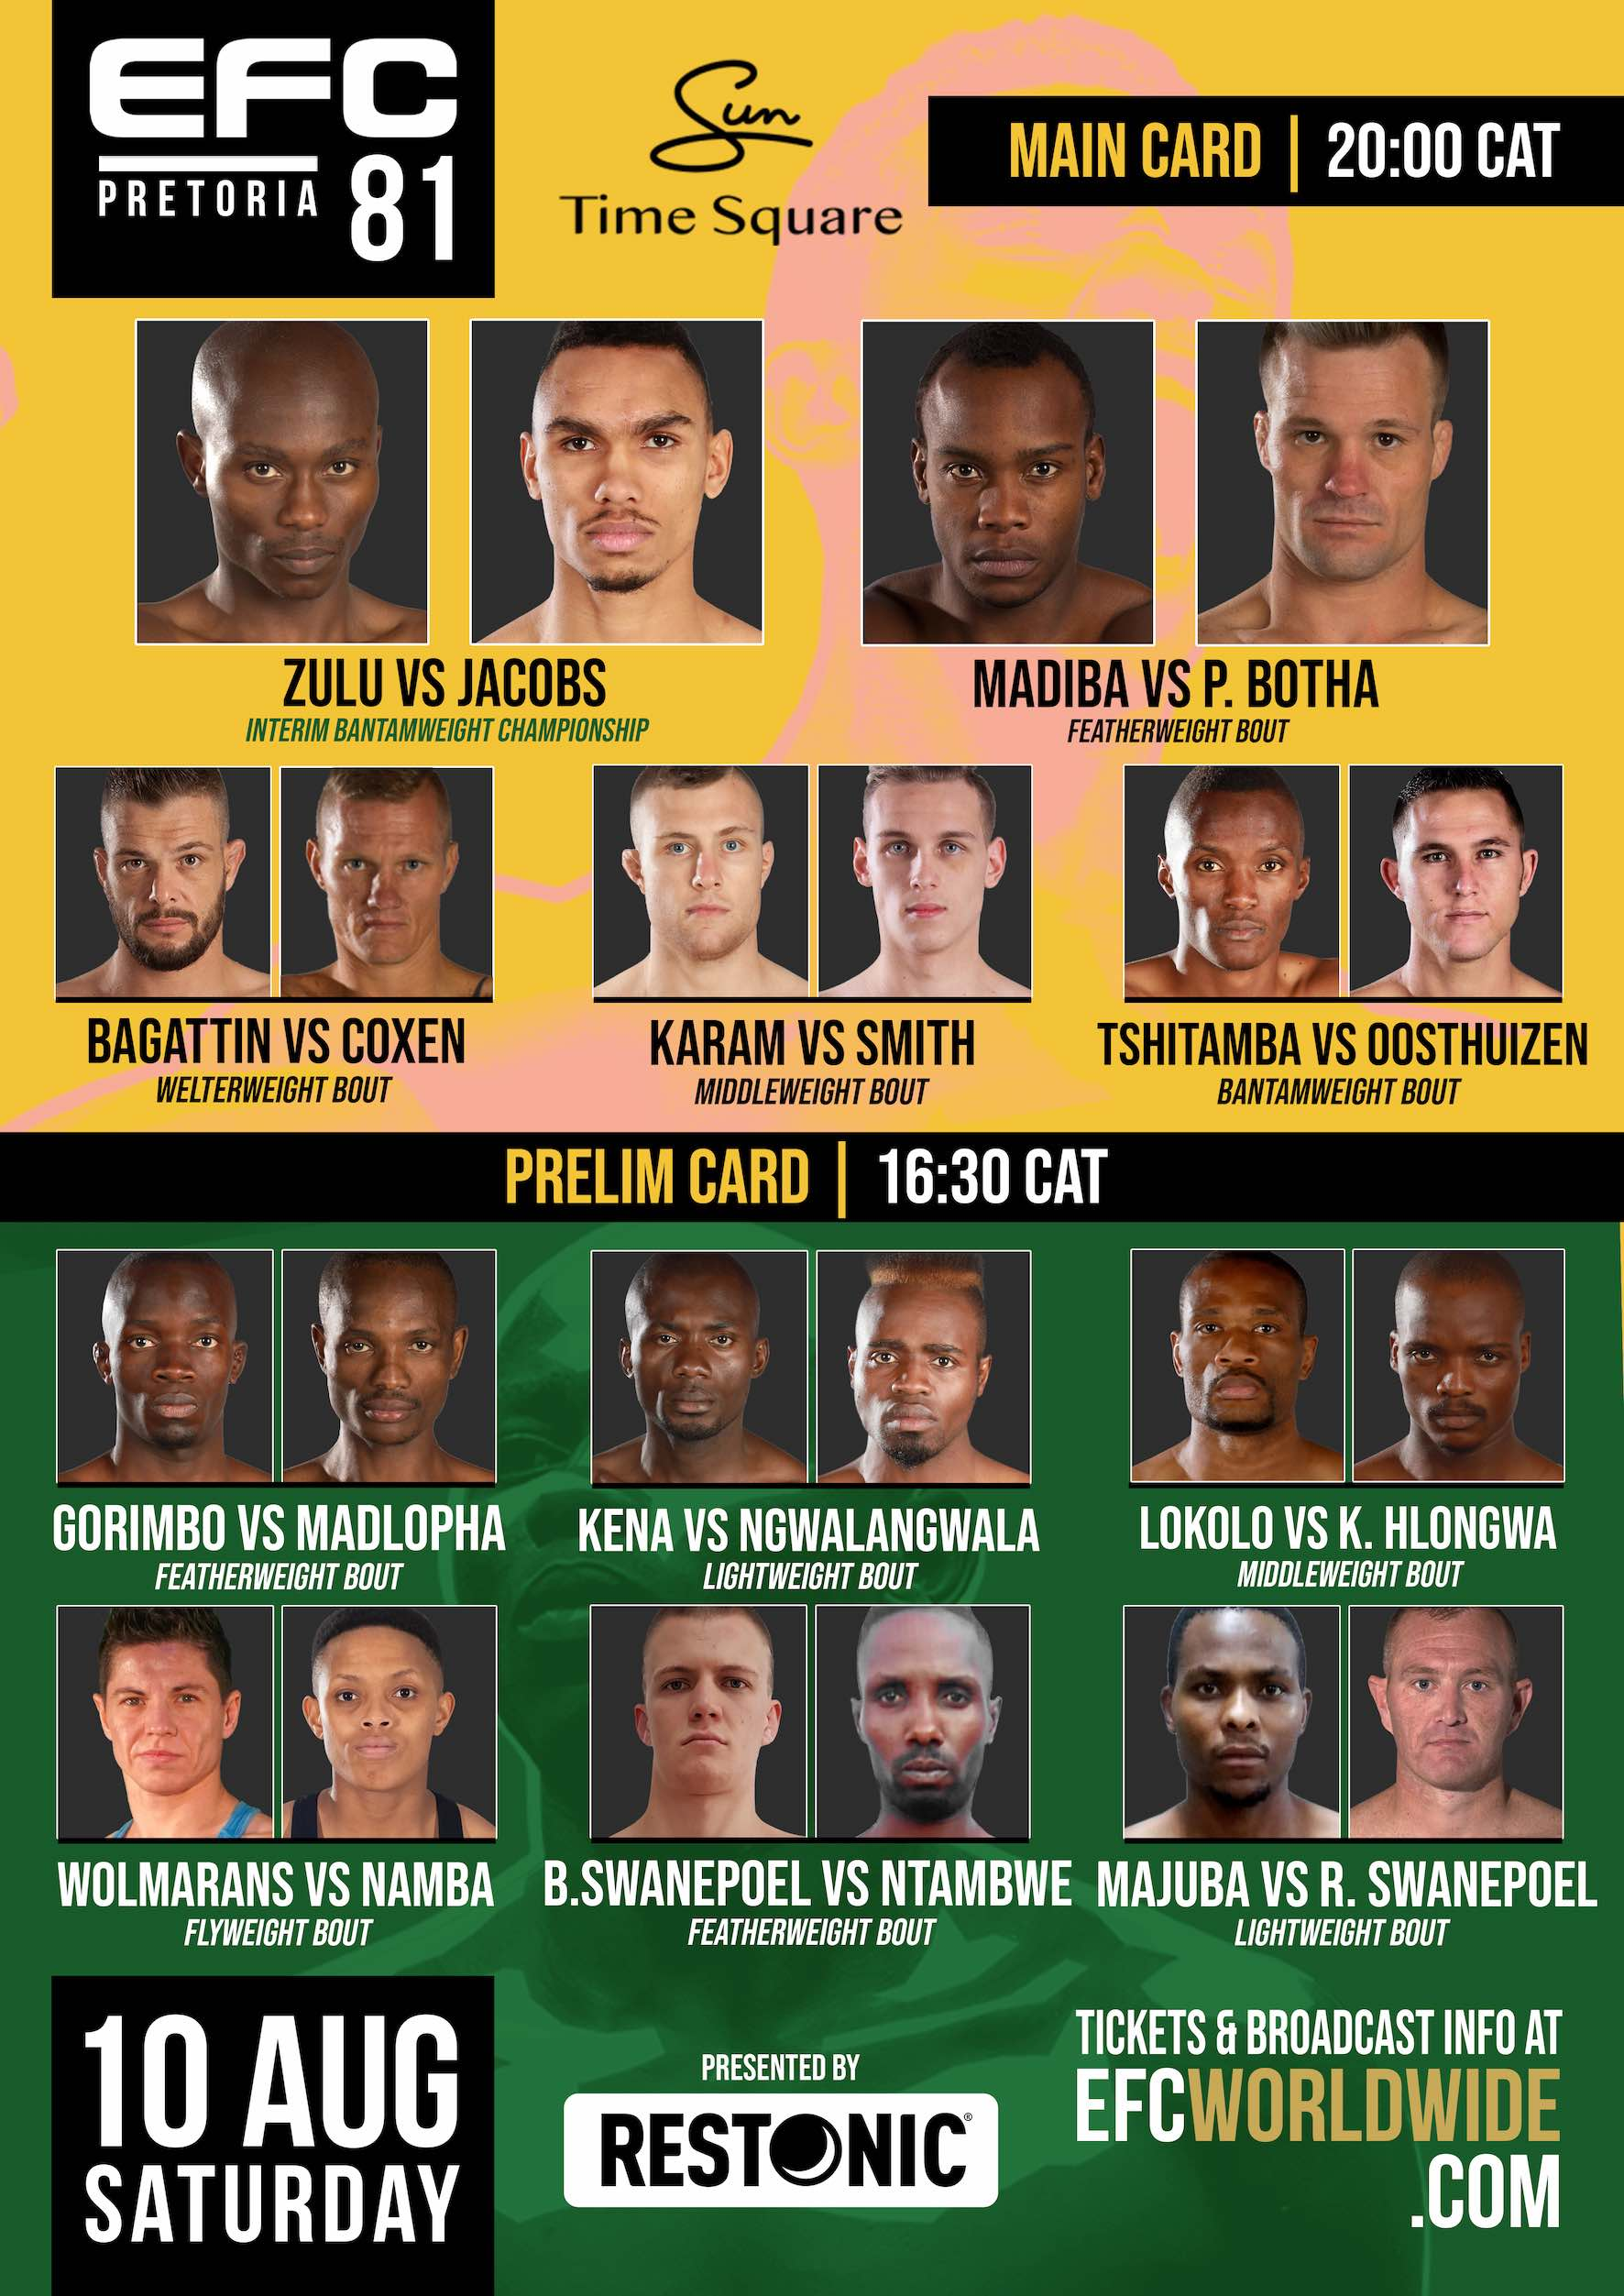 See the full Mixed Martial Arts Fight Card for EFC 81